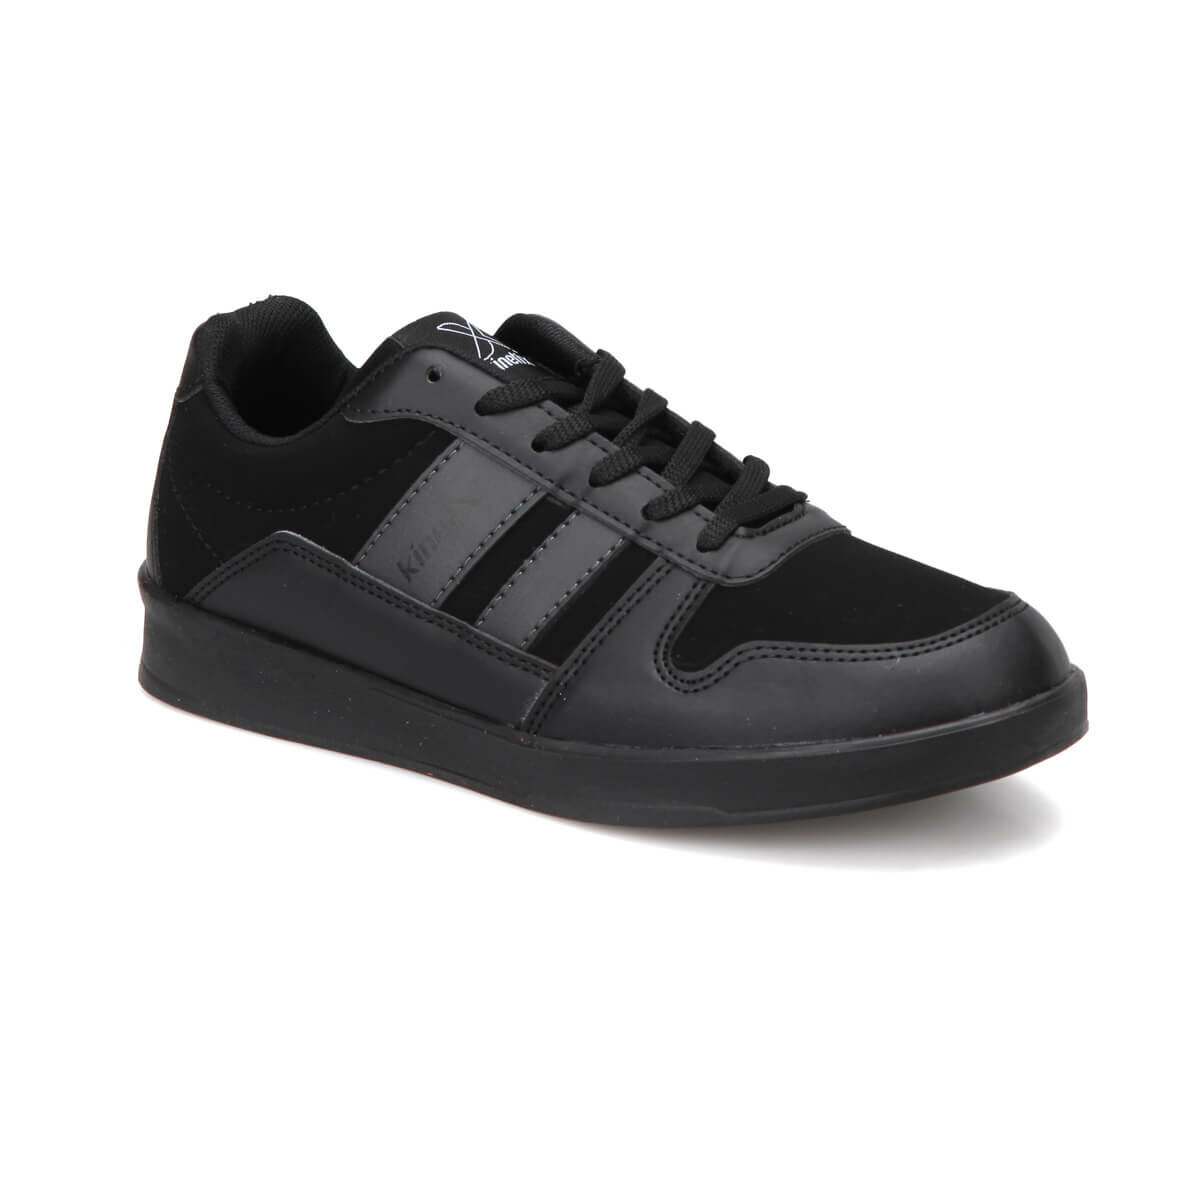 FLO MONTEL Black Men 'S Sneaker Shoes KINETIX